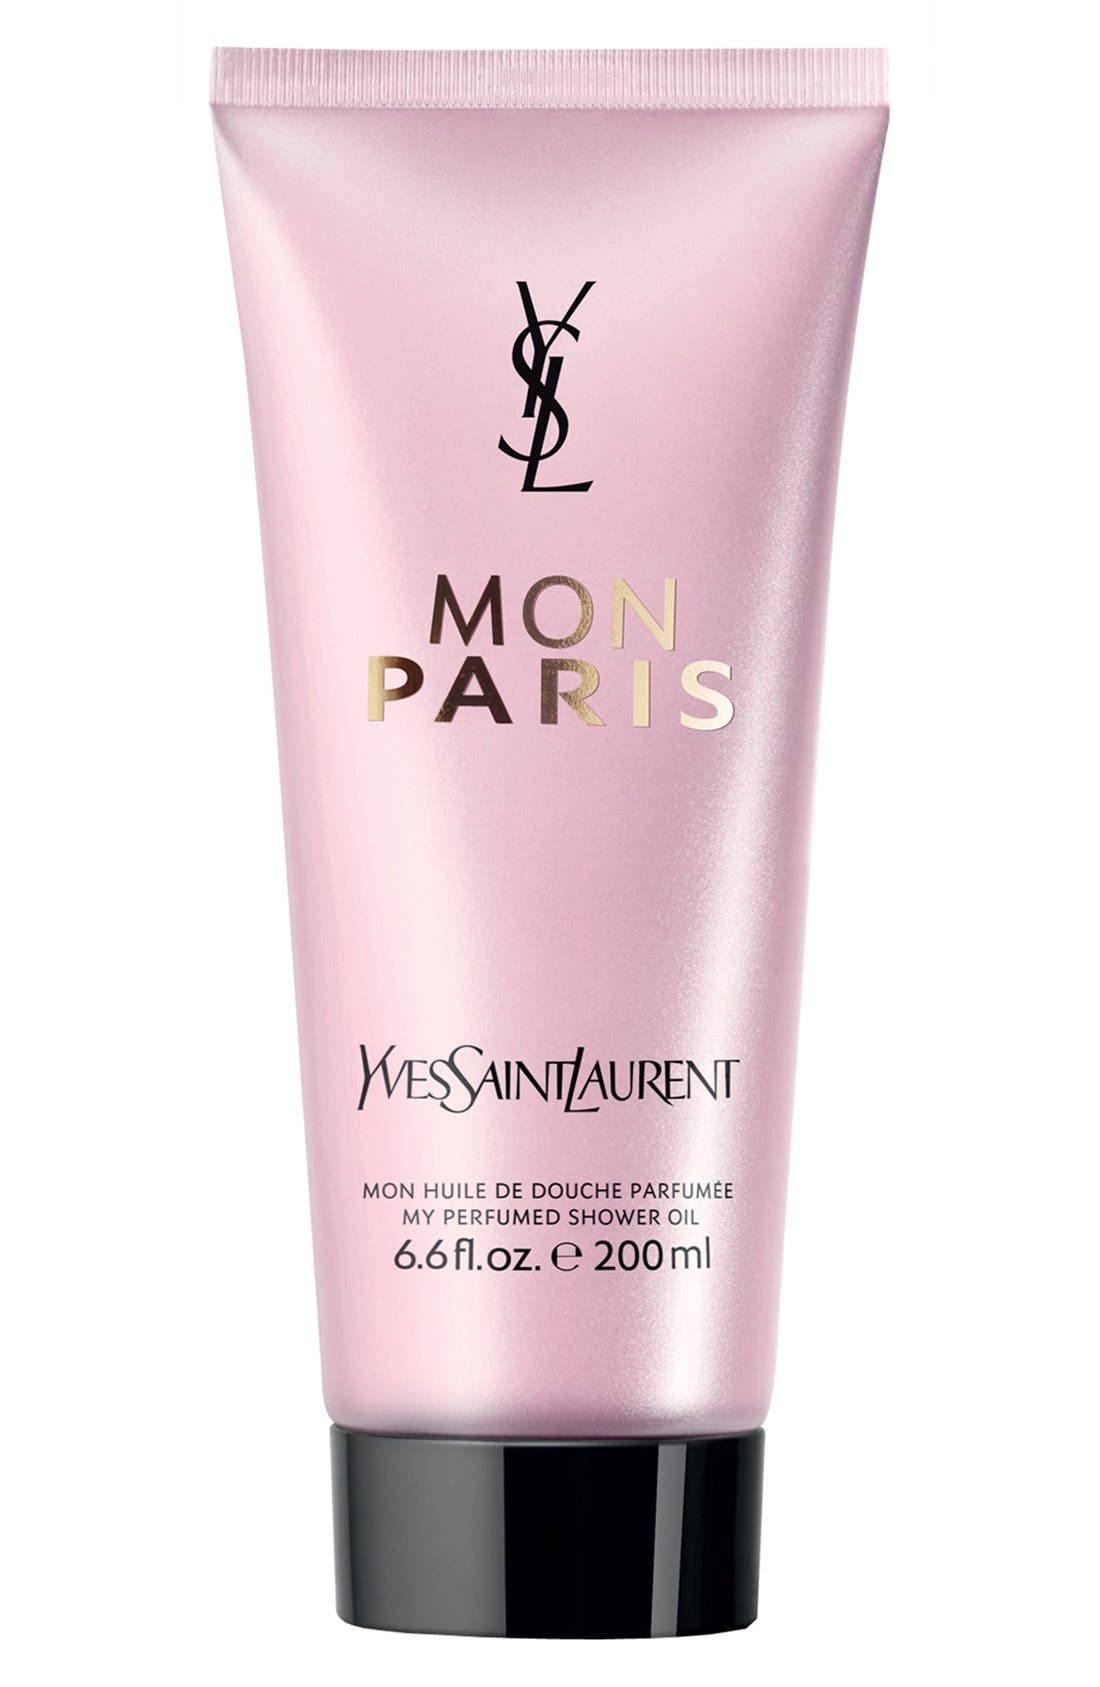 Yves Saint Laurent 'Mon Paris' Shower Oil